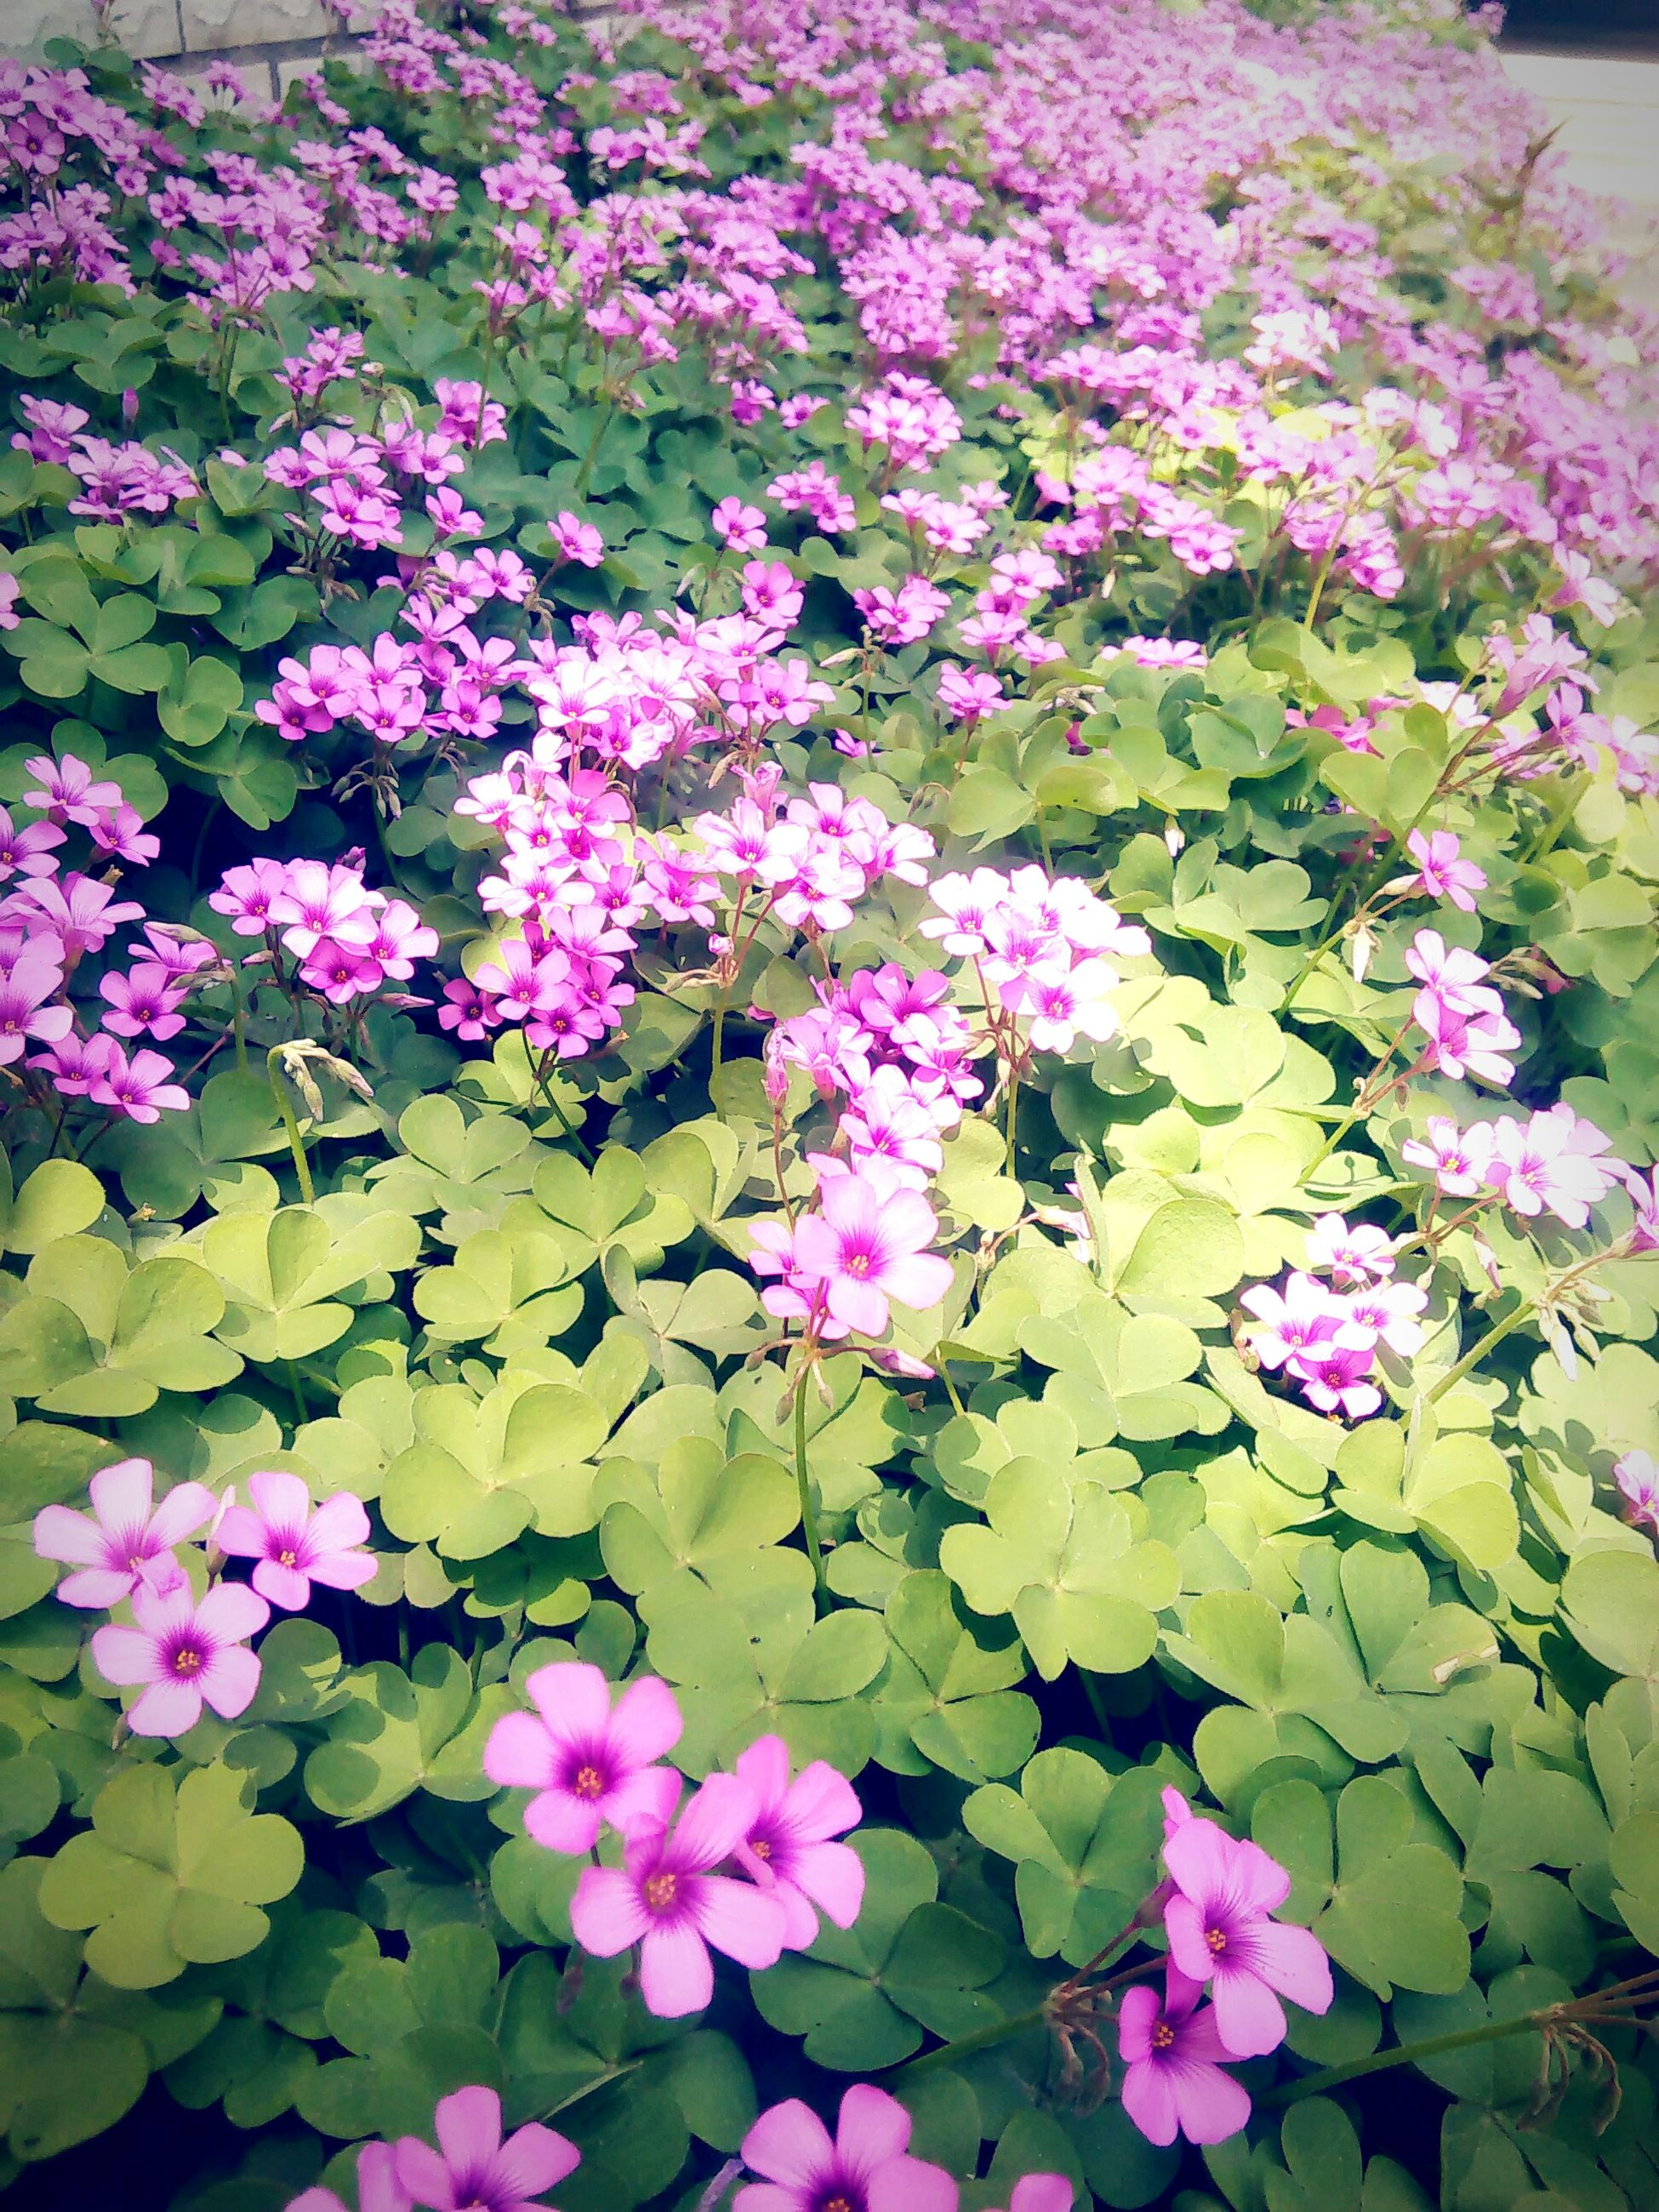 flower, freshness, fragility, petal, pink color, growth, beauty in nature, purple, blooming, nature, flower head, plant, in bloom, pink, high angle view, leaf, park - man made space, abundance, blossom, outdoors